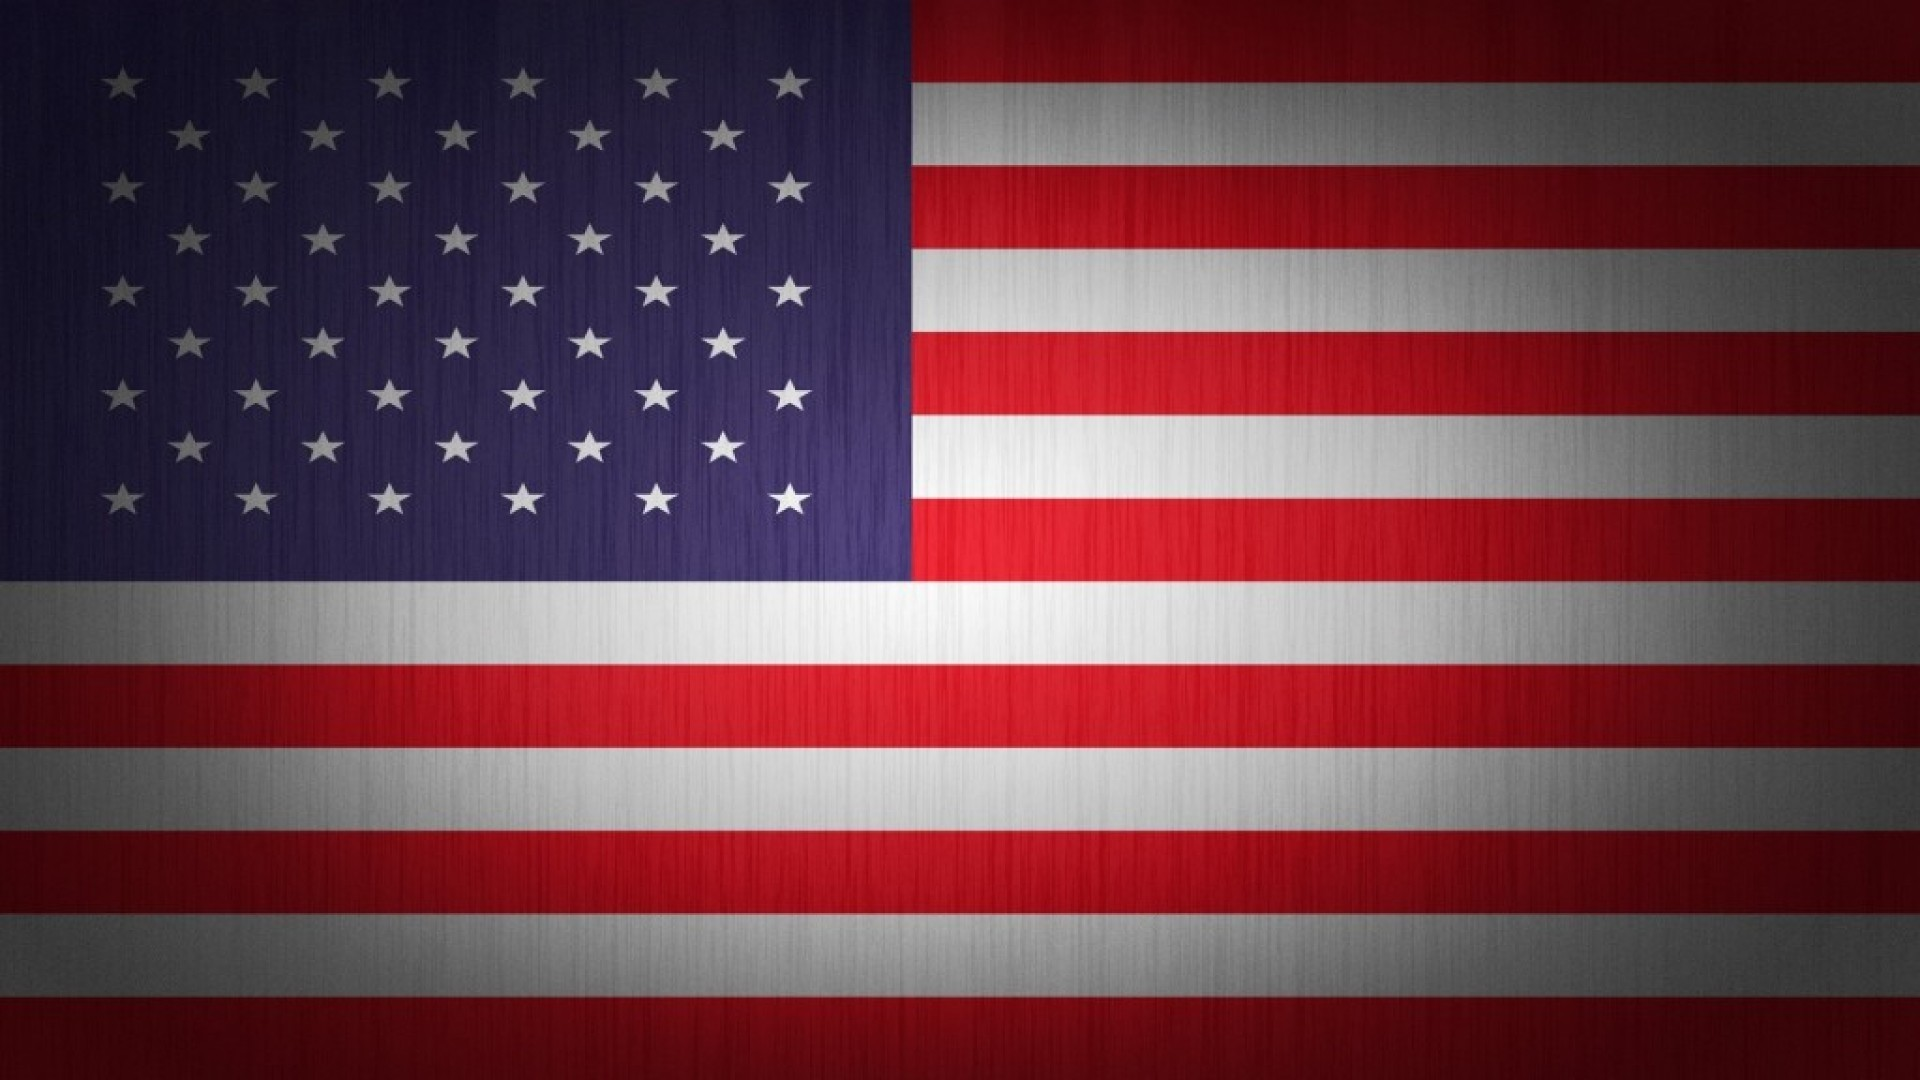 american flag iphone wallpaper american flag background images 61 images 13395